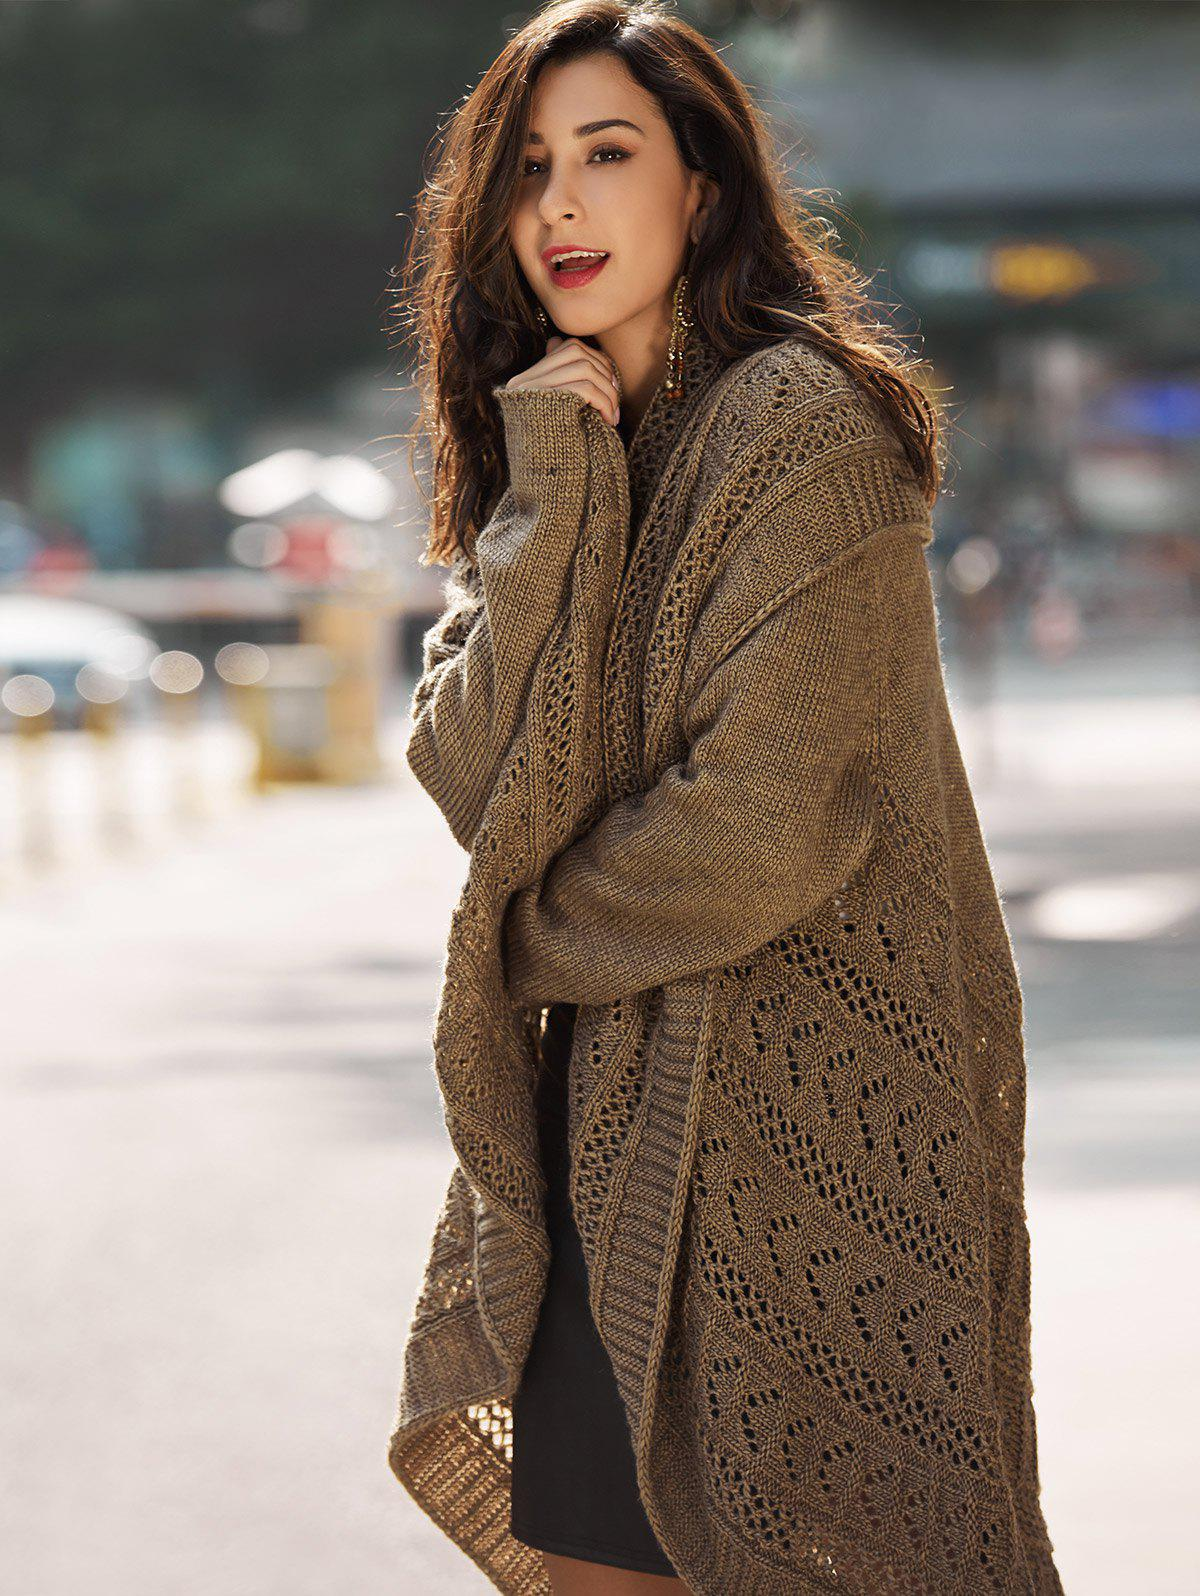 Drop Shoulder Crochet Knit Long CardiganWOMEN<br><br>Size: ONE SIZE; Color: BROWN; Type: Cardigans; Material: Acrylic; Sleeve Length: Full; Collar: Turn-down Collar; Technics: Crocheted; Style: Casual; Pattern Type: Solid; Embellishment: Hollow Out; Season: Fall,Spring,Winter; Weight: 0.9400kg; Package Contents: 1 x Cardigan;